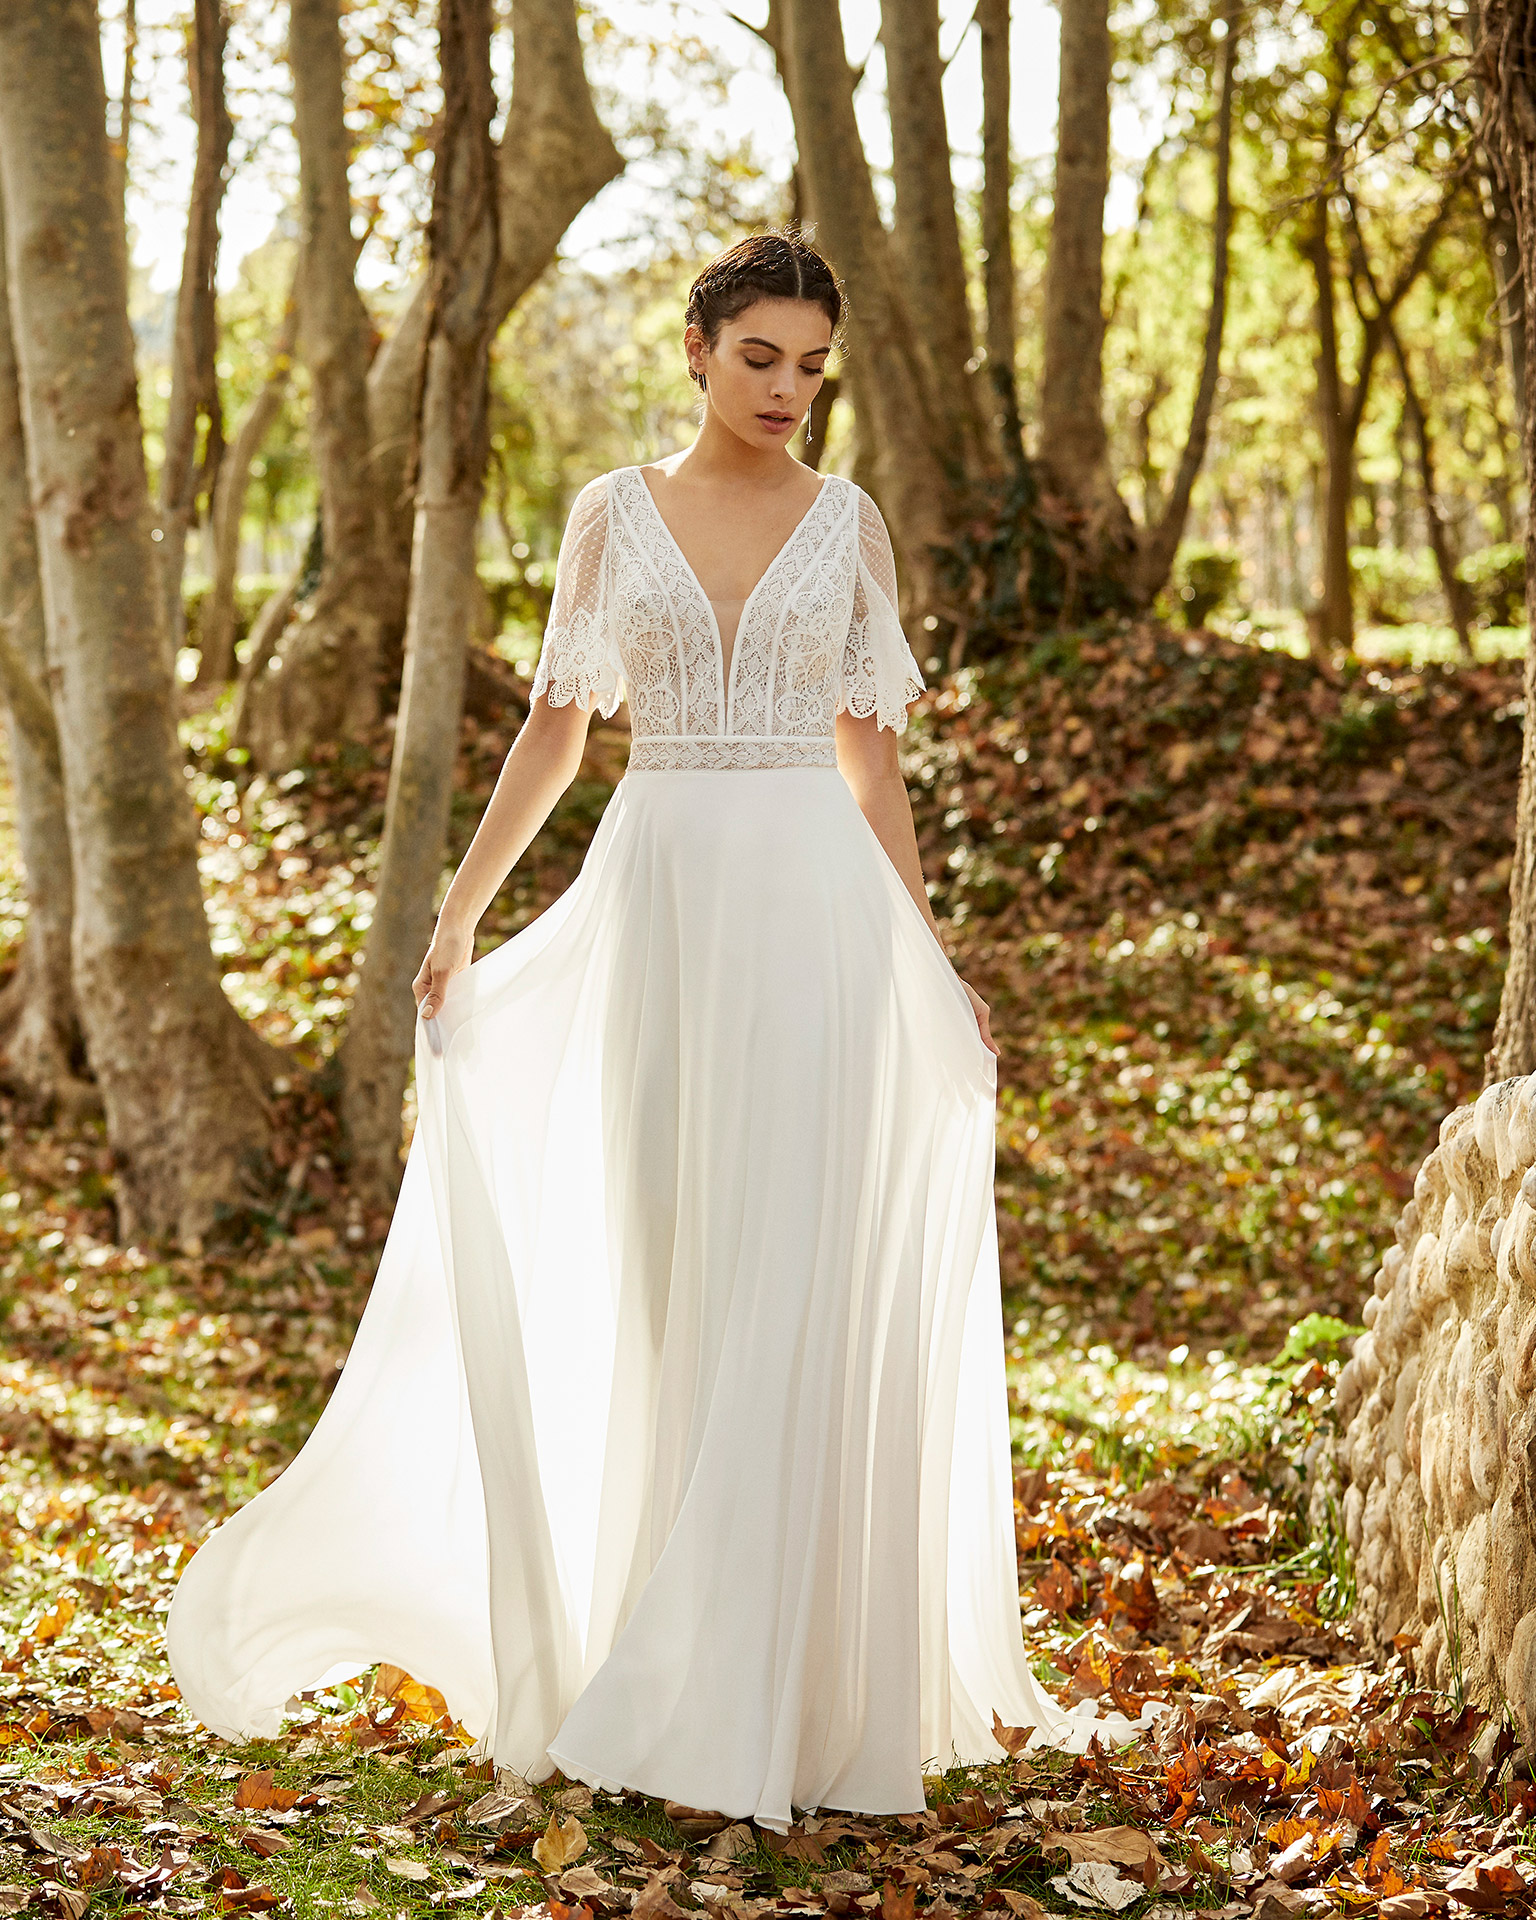 Boho-style lace and chiffon wedding dress with deep-plunge neckline, V-back and short sleeves. 2020 ALMANOVIA Collection.